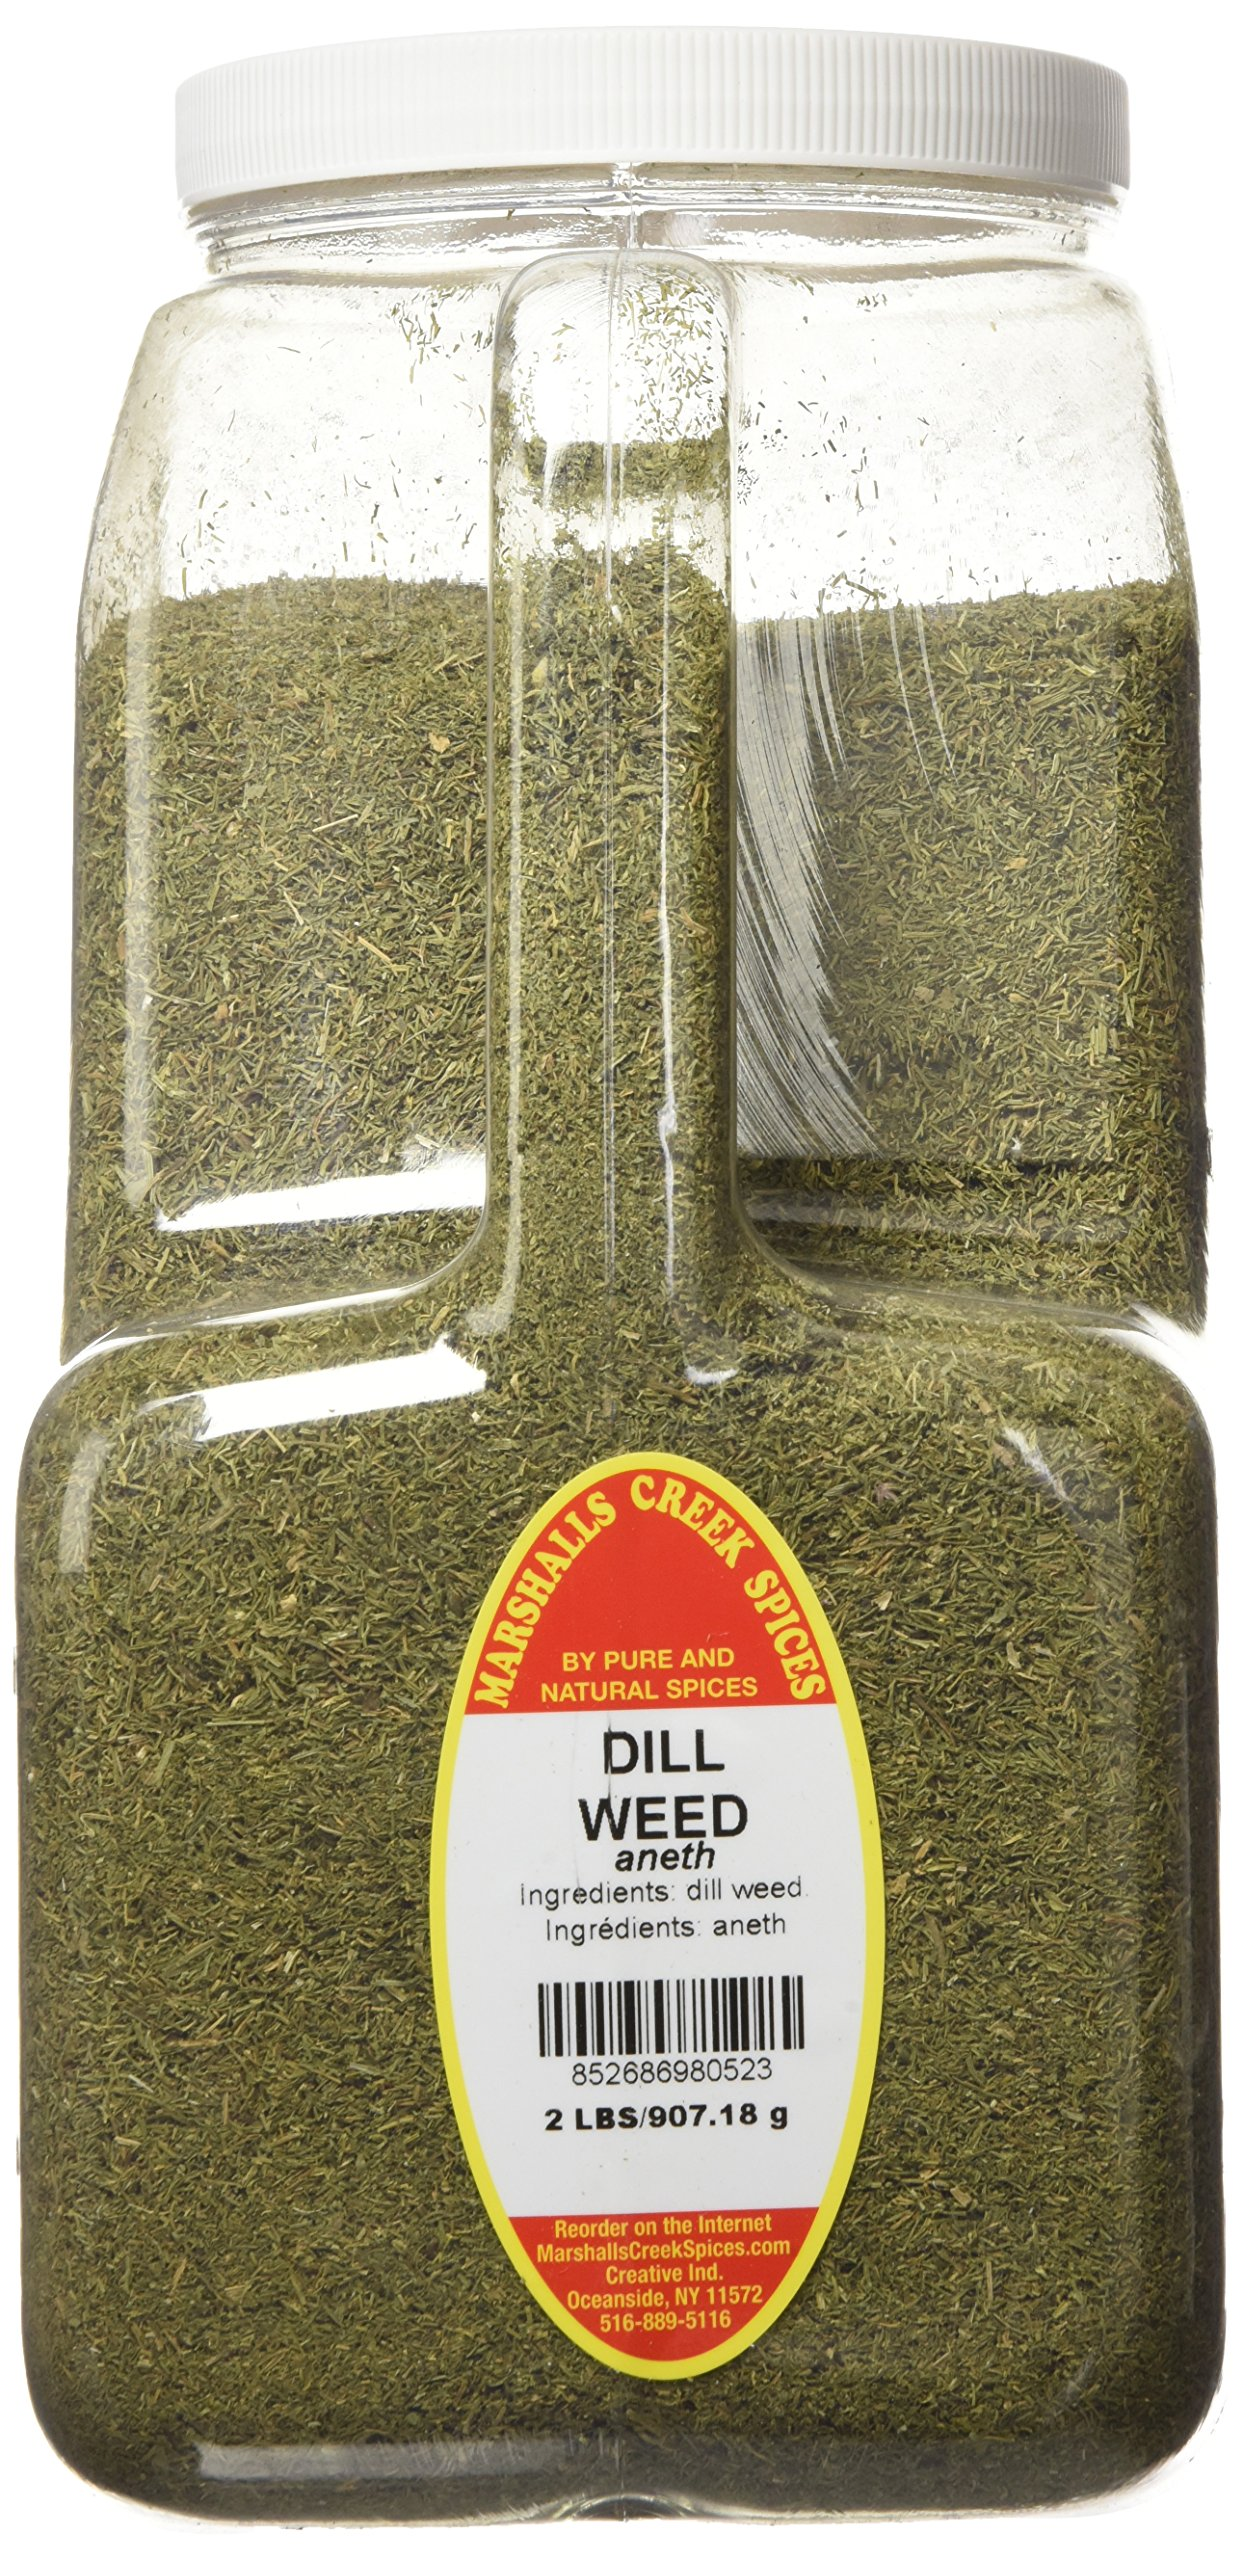 Marshalls Creek Spices XXL Restaurant Size Spice Jug, Dill Weed, 2 Pound